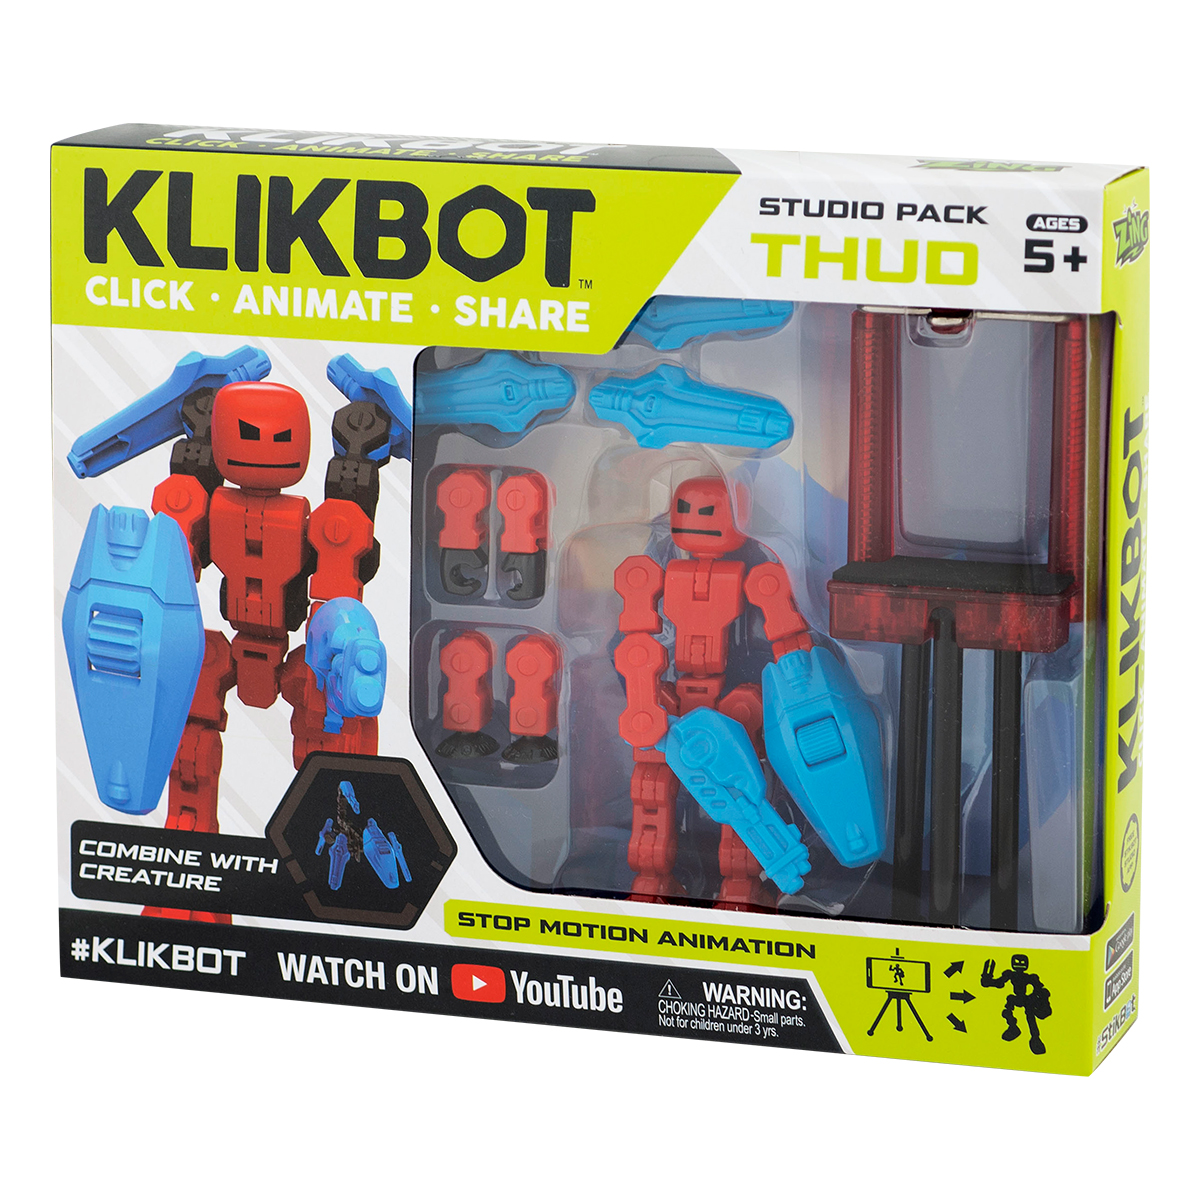 Set Figurina Robot articulat transformabil KlikBot Studio Pack, Red